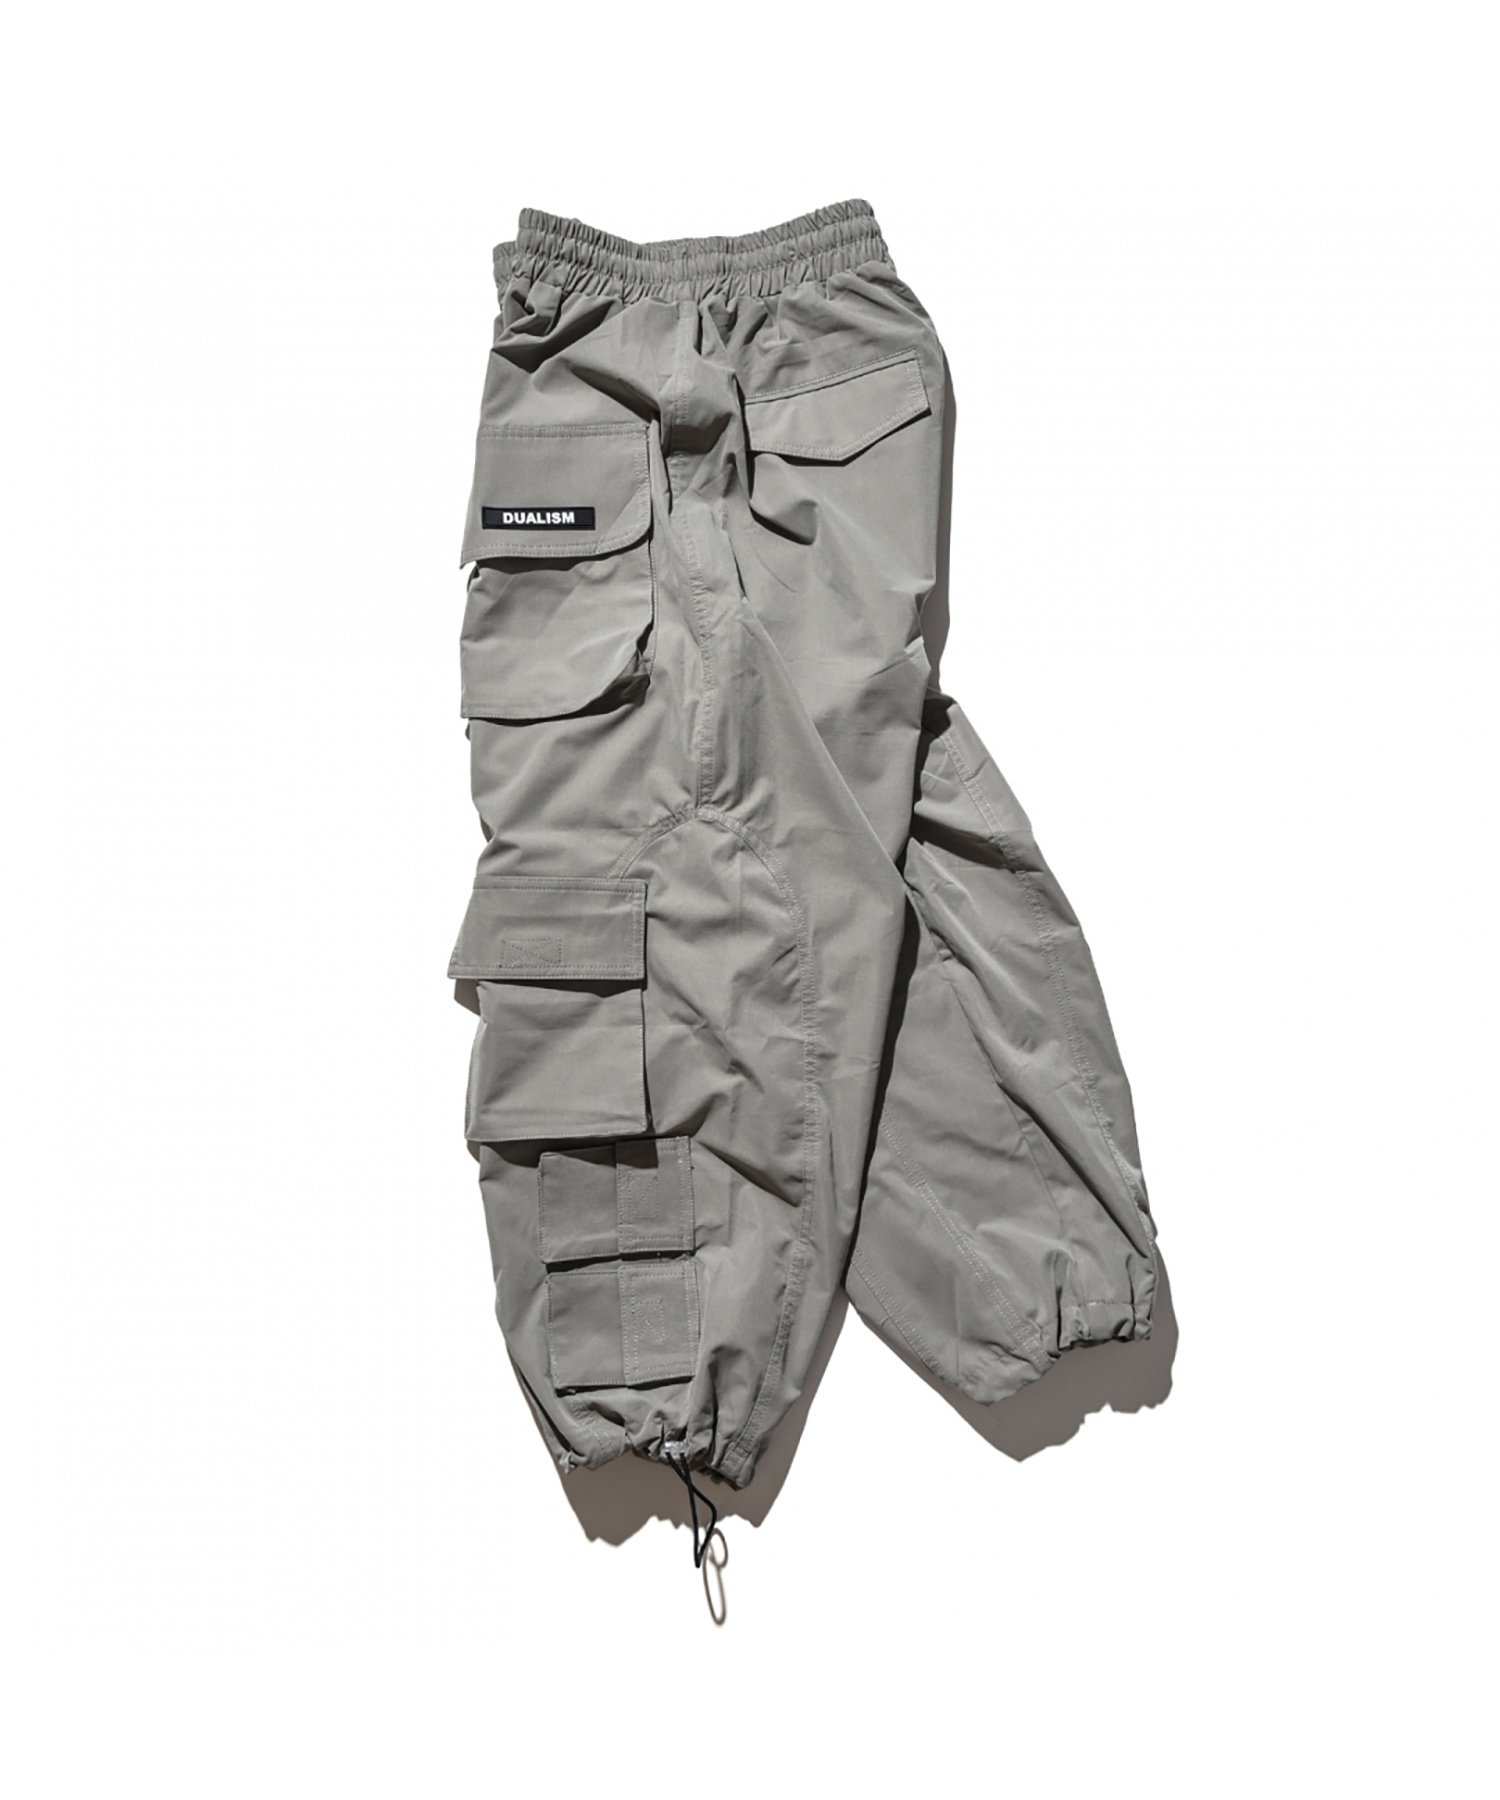 DUALISM 9 POCKET CARGO PANTS